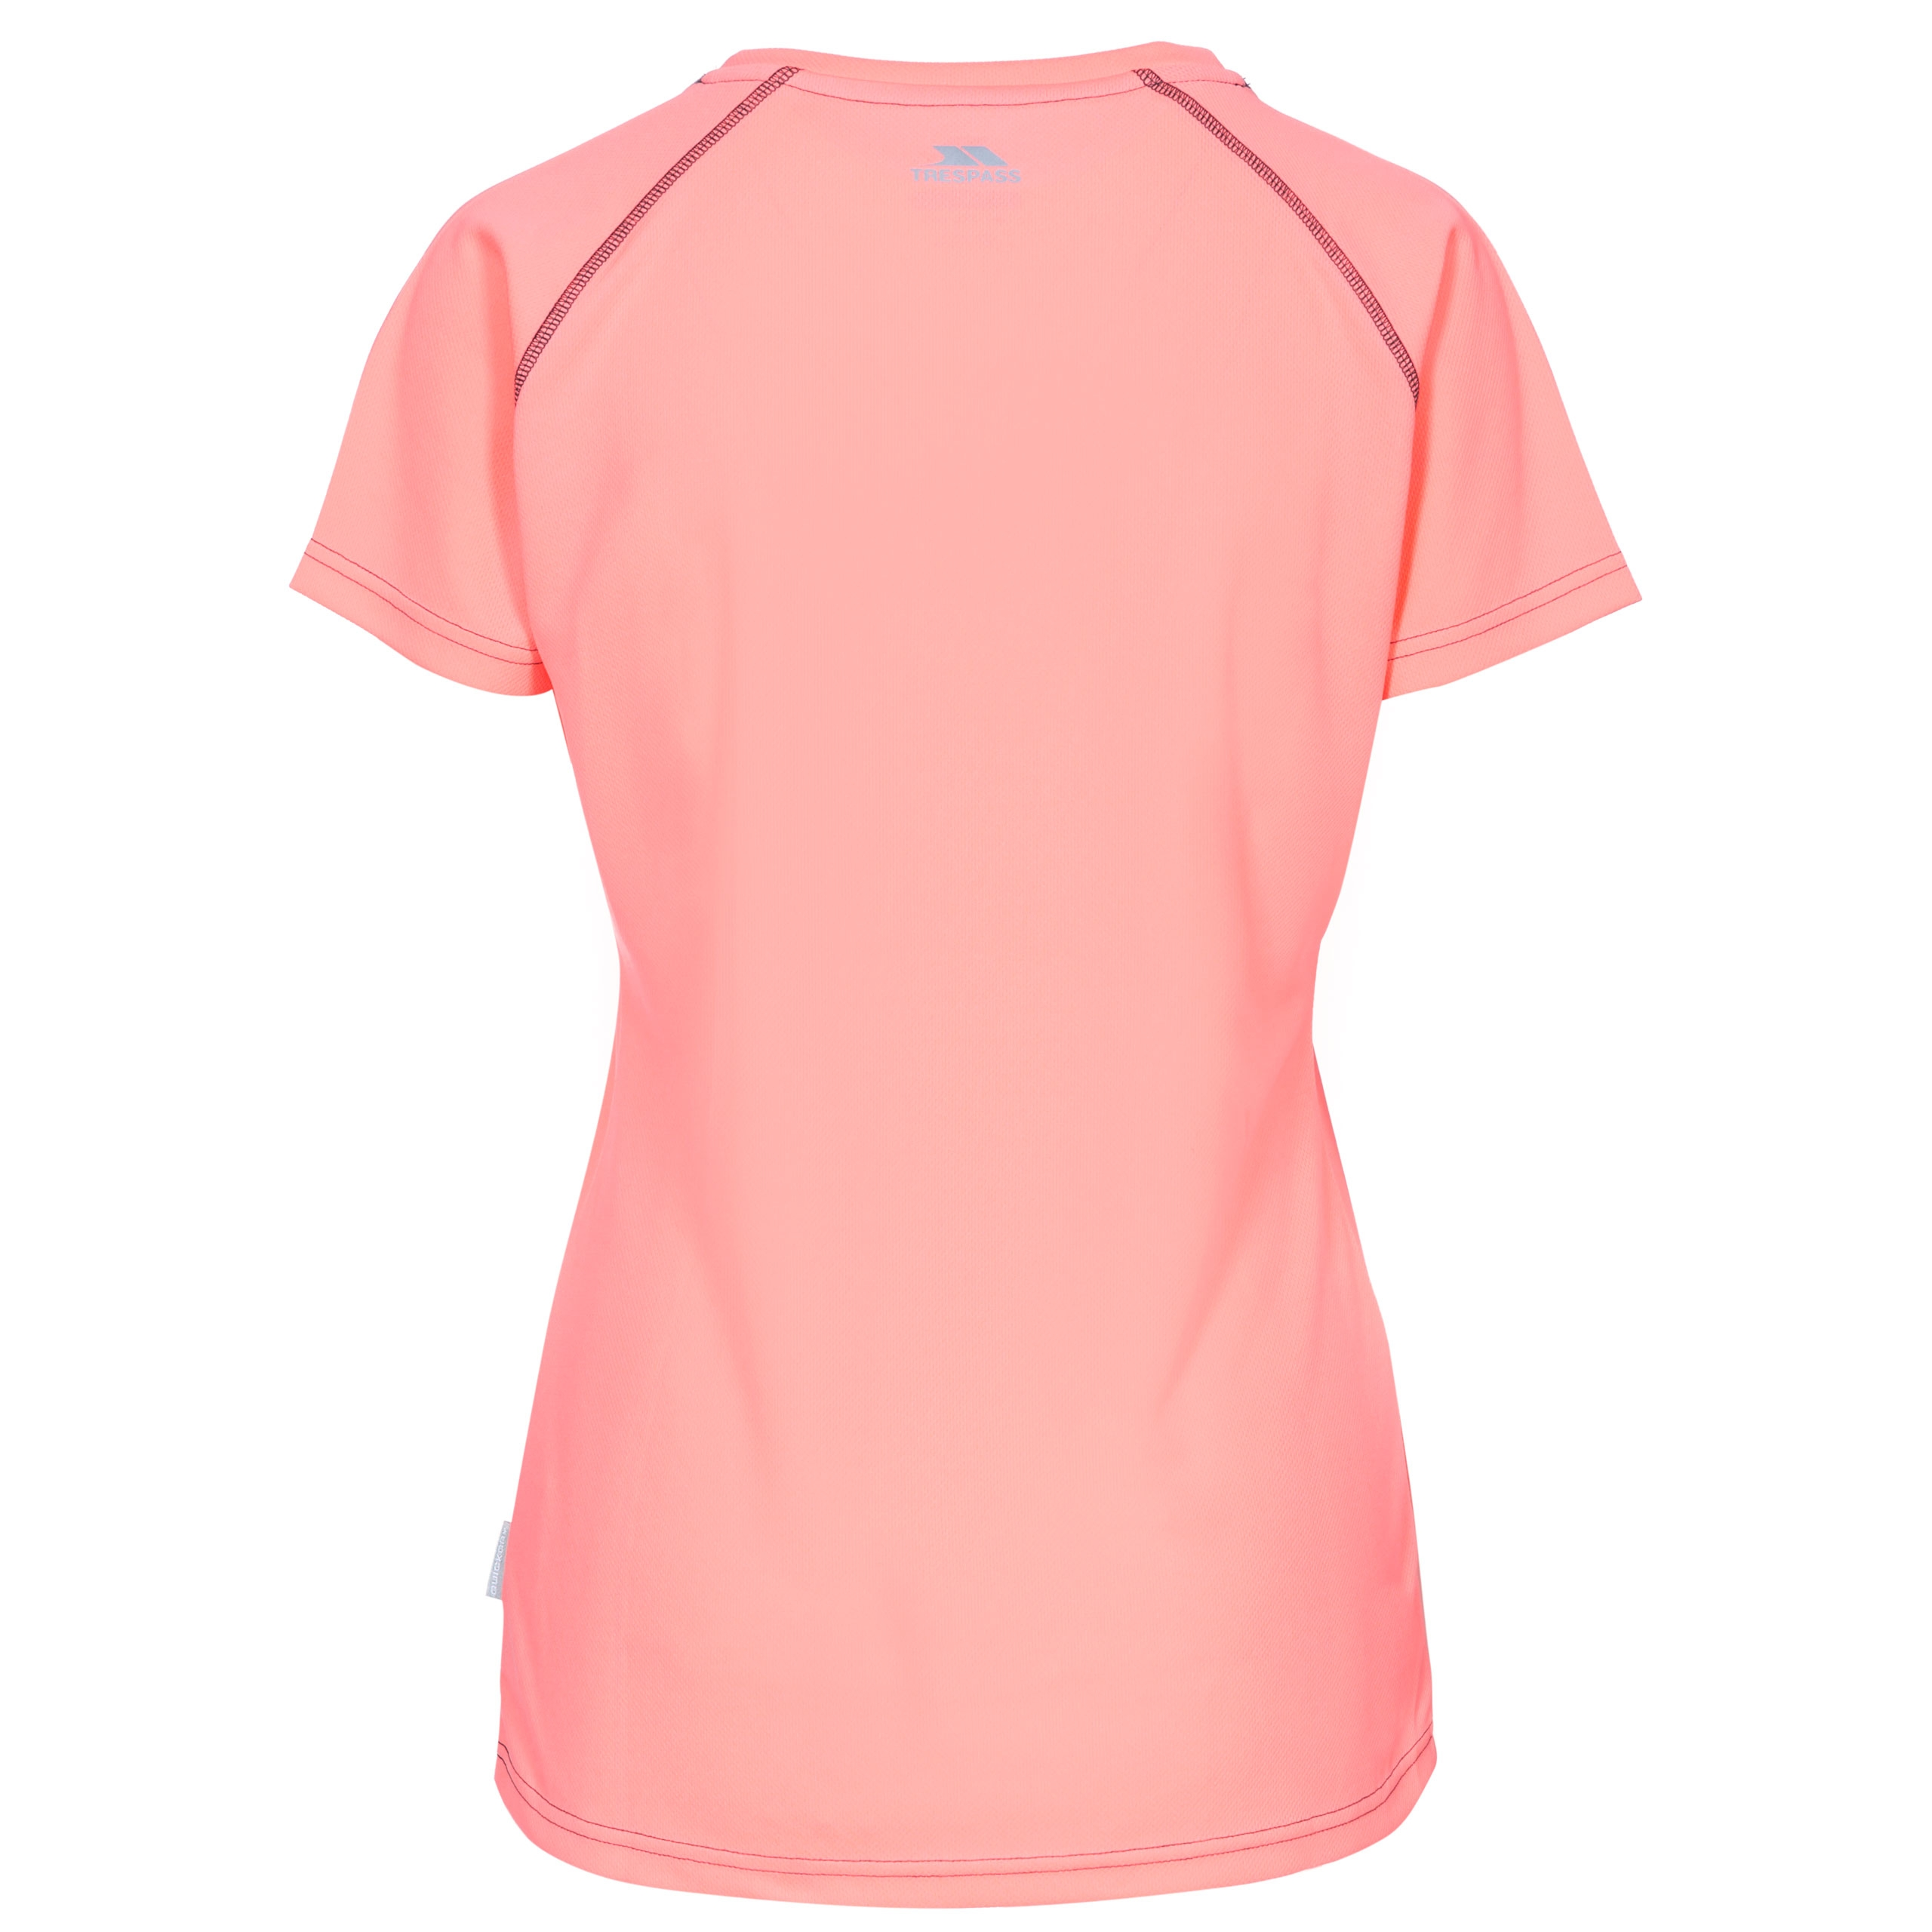 Trespass-Mamo-Womens-Reflective-Top-Short-Sleeve-T-Shirt-for-Hiking-and-Workout thumbnail 22